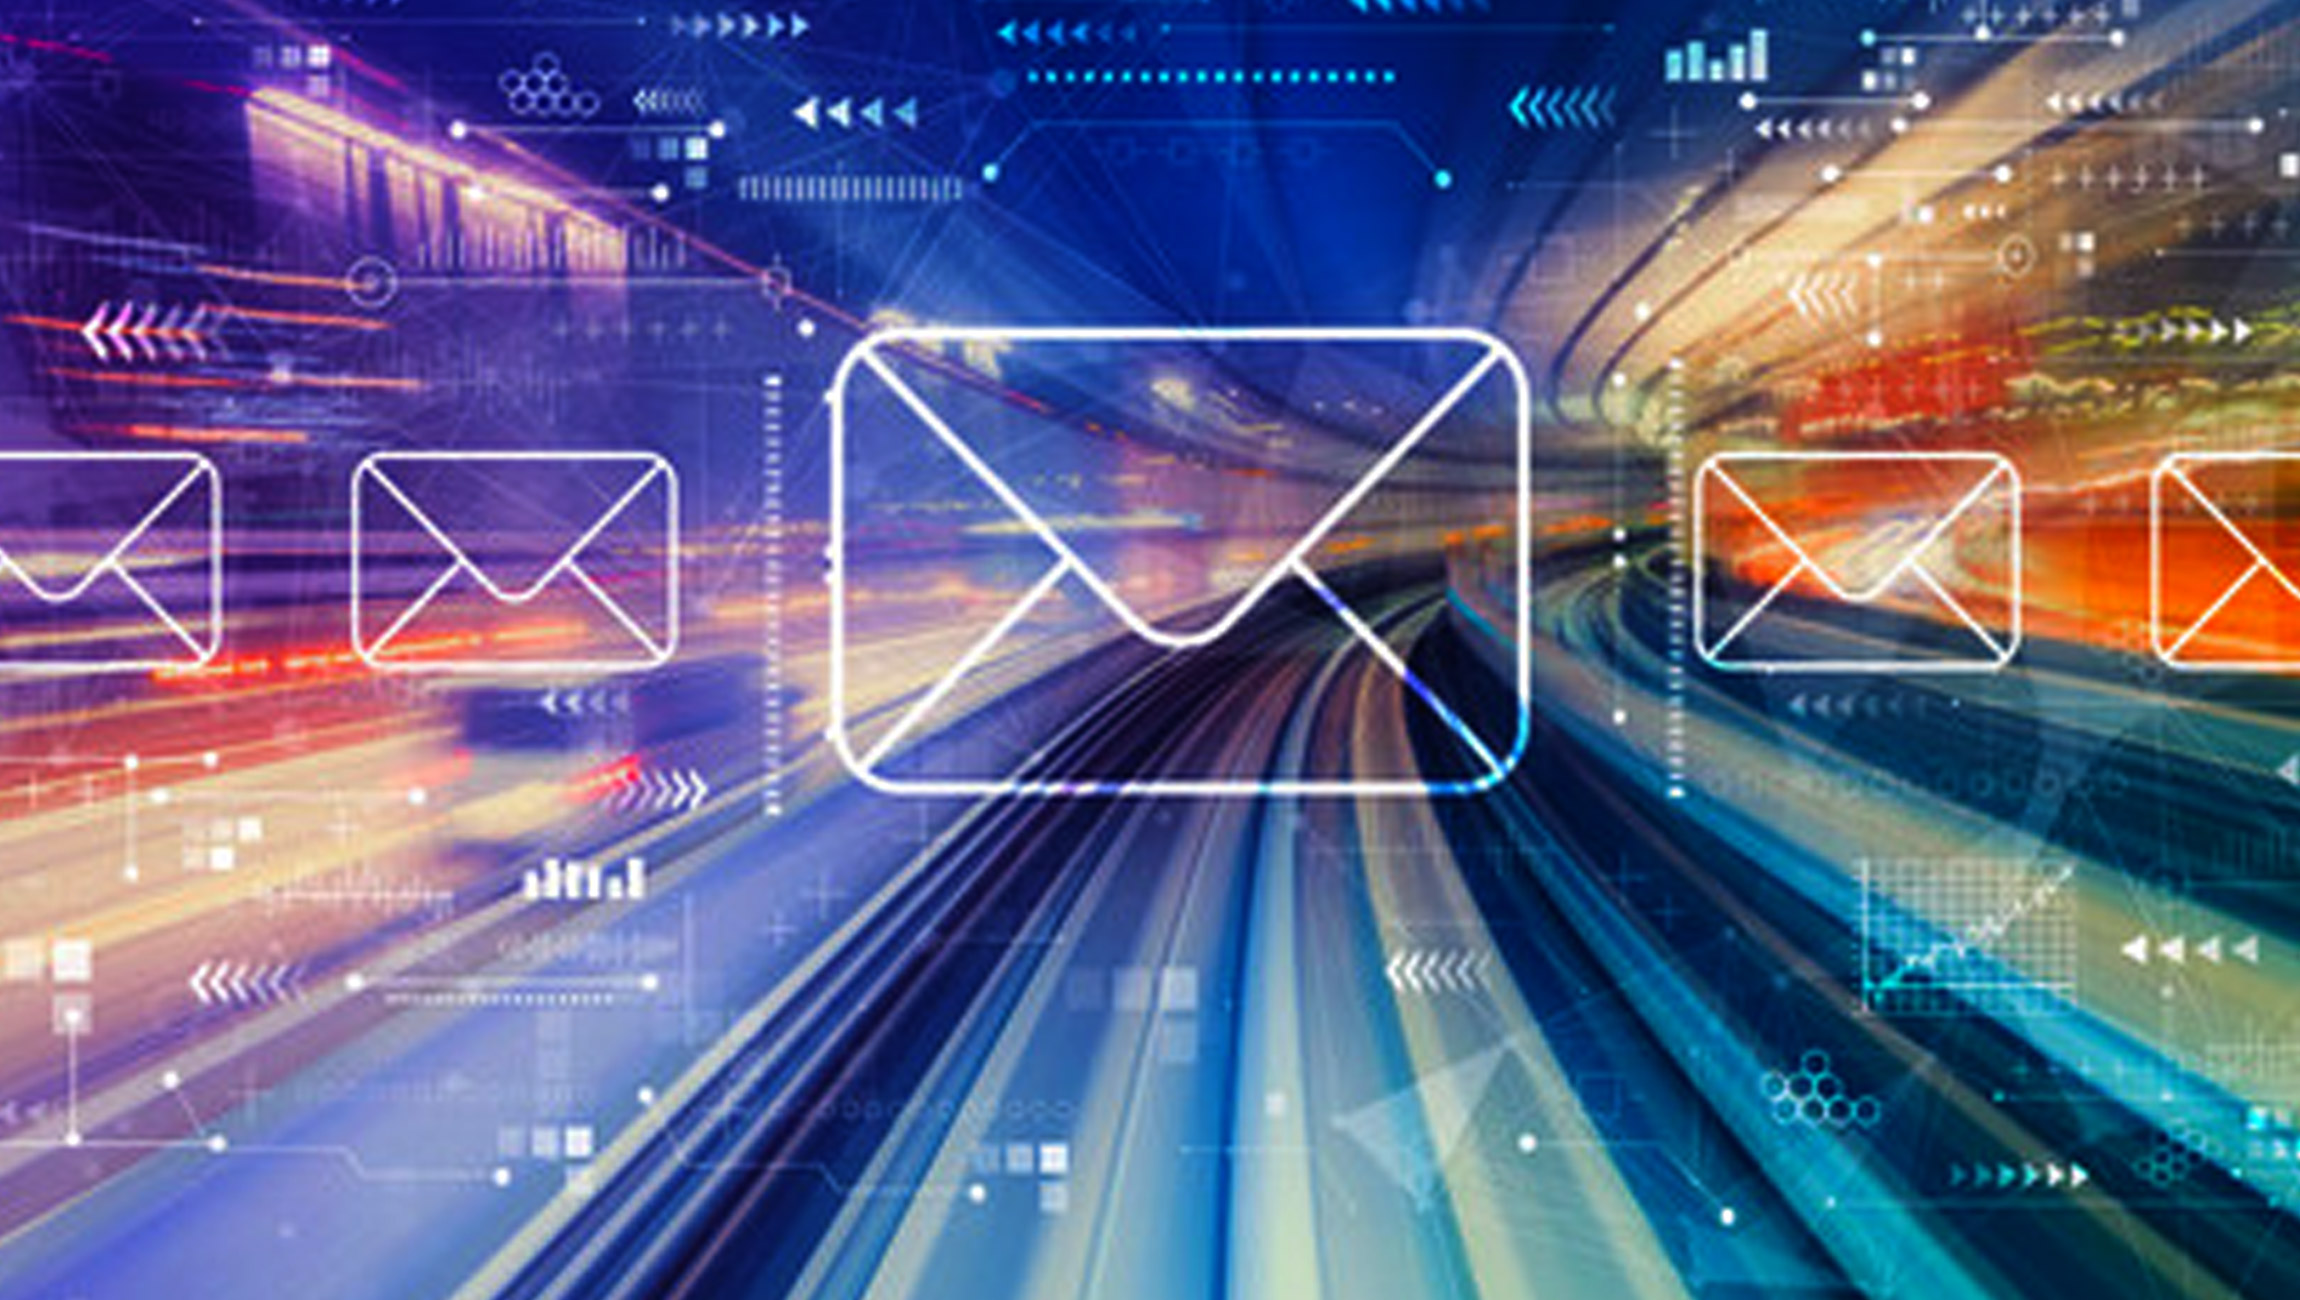 Fastmail Announces the Launch of New Email Navigation Feature